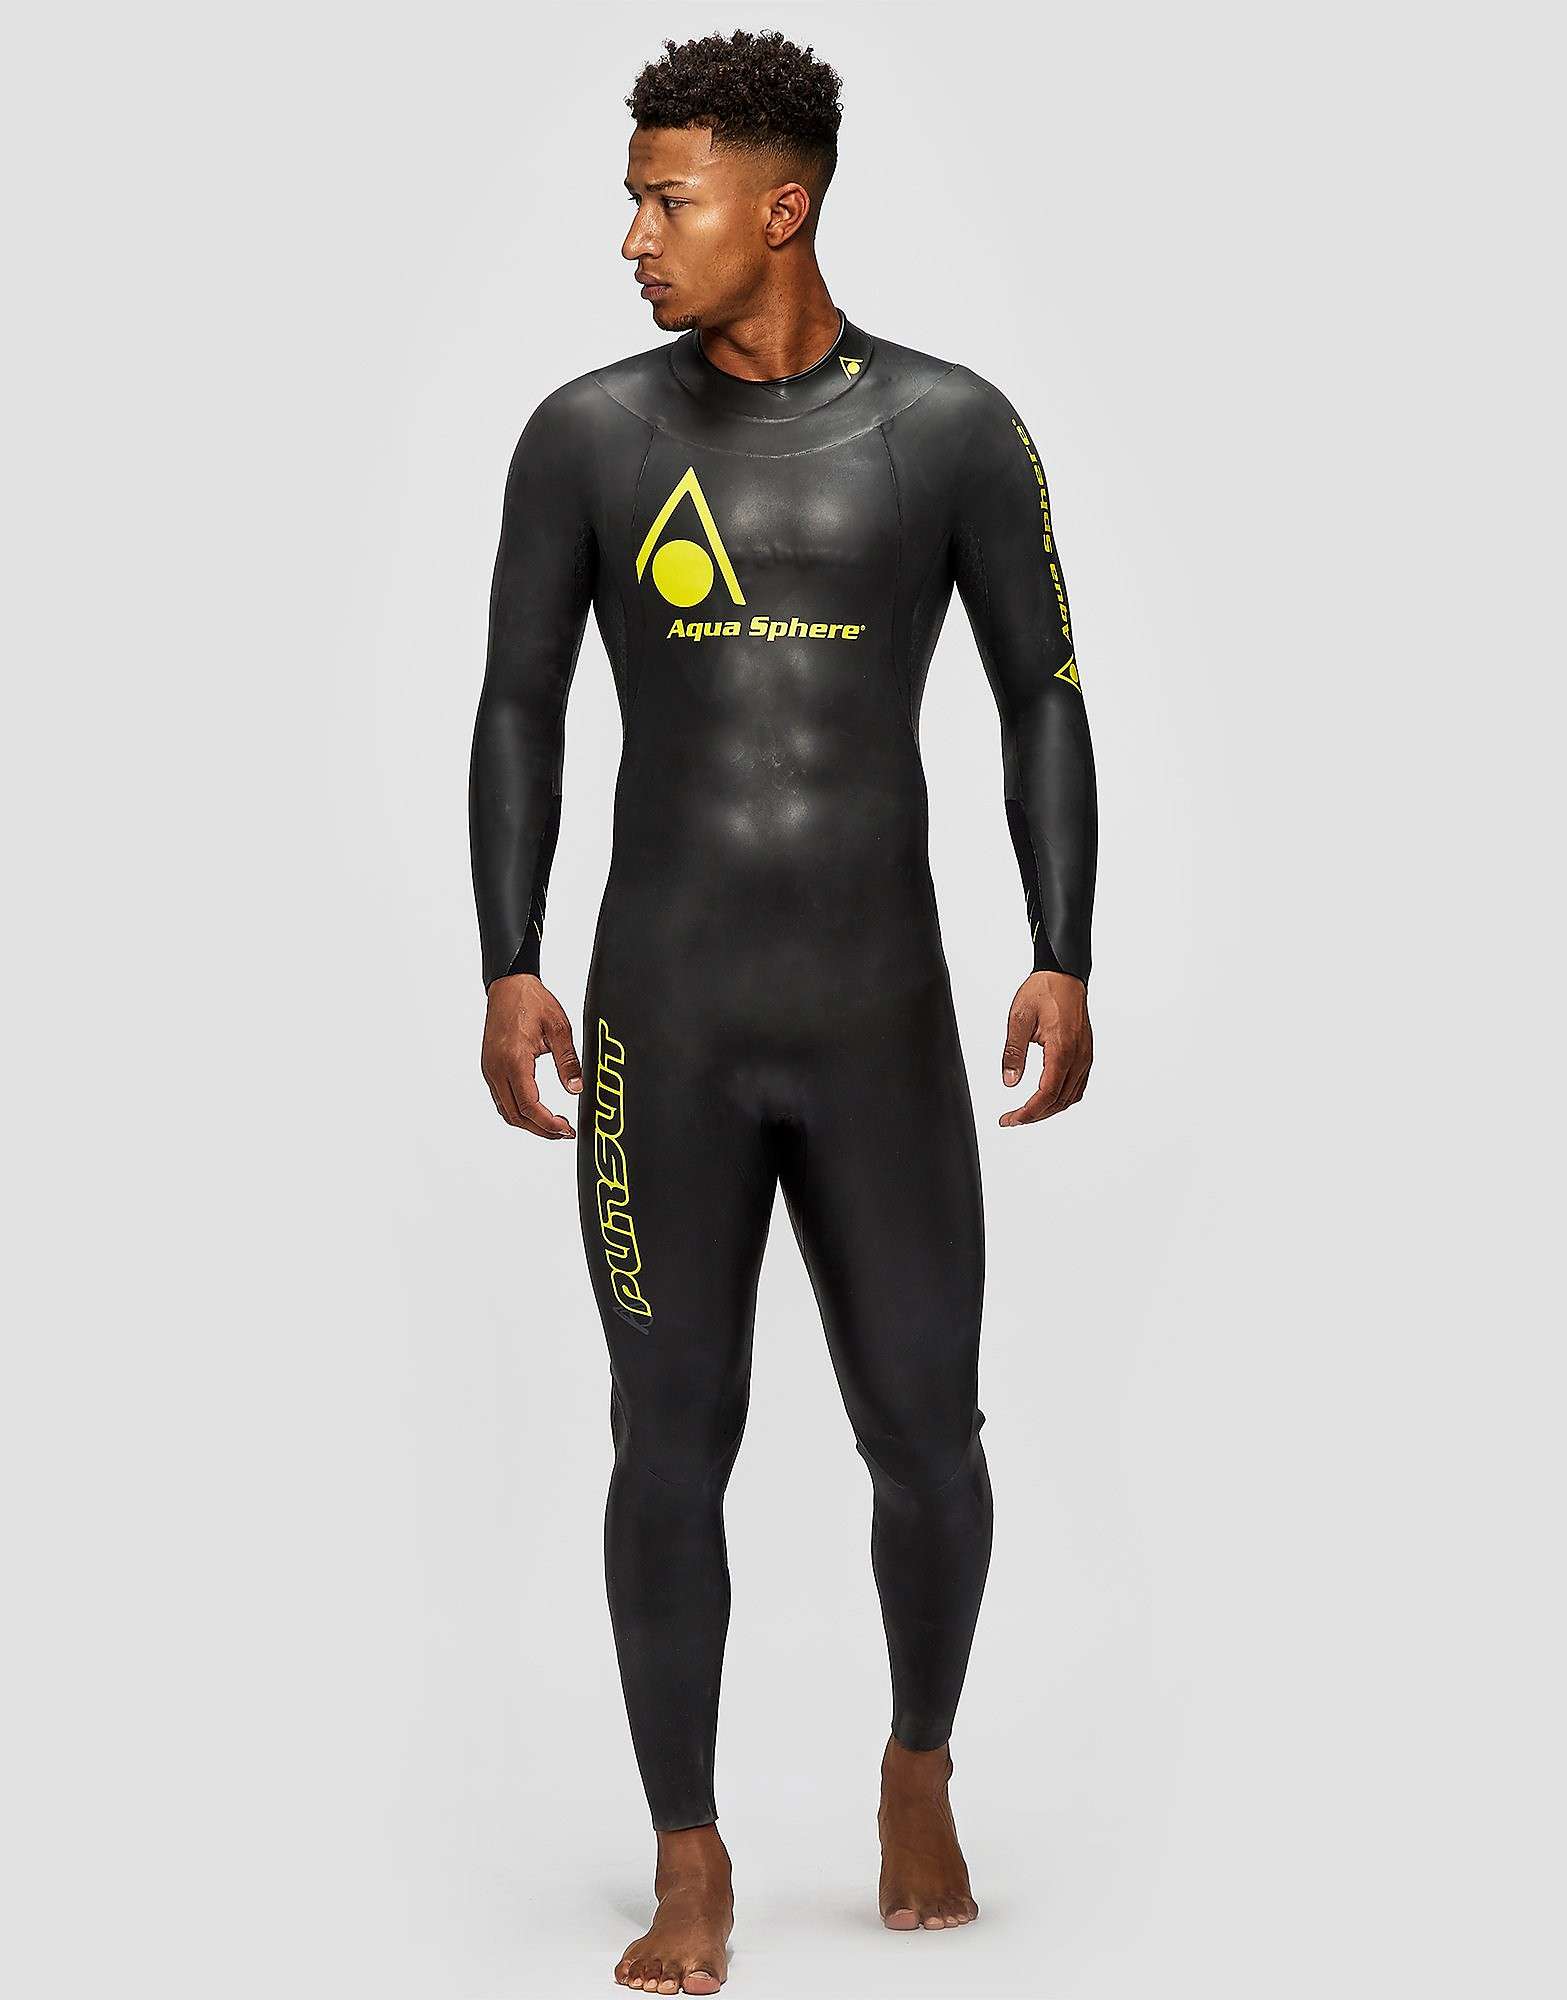 Aqua Sphere Pursuit Full Sleeve Men's Wetsuit